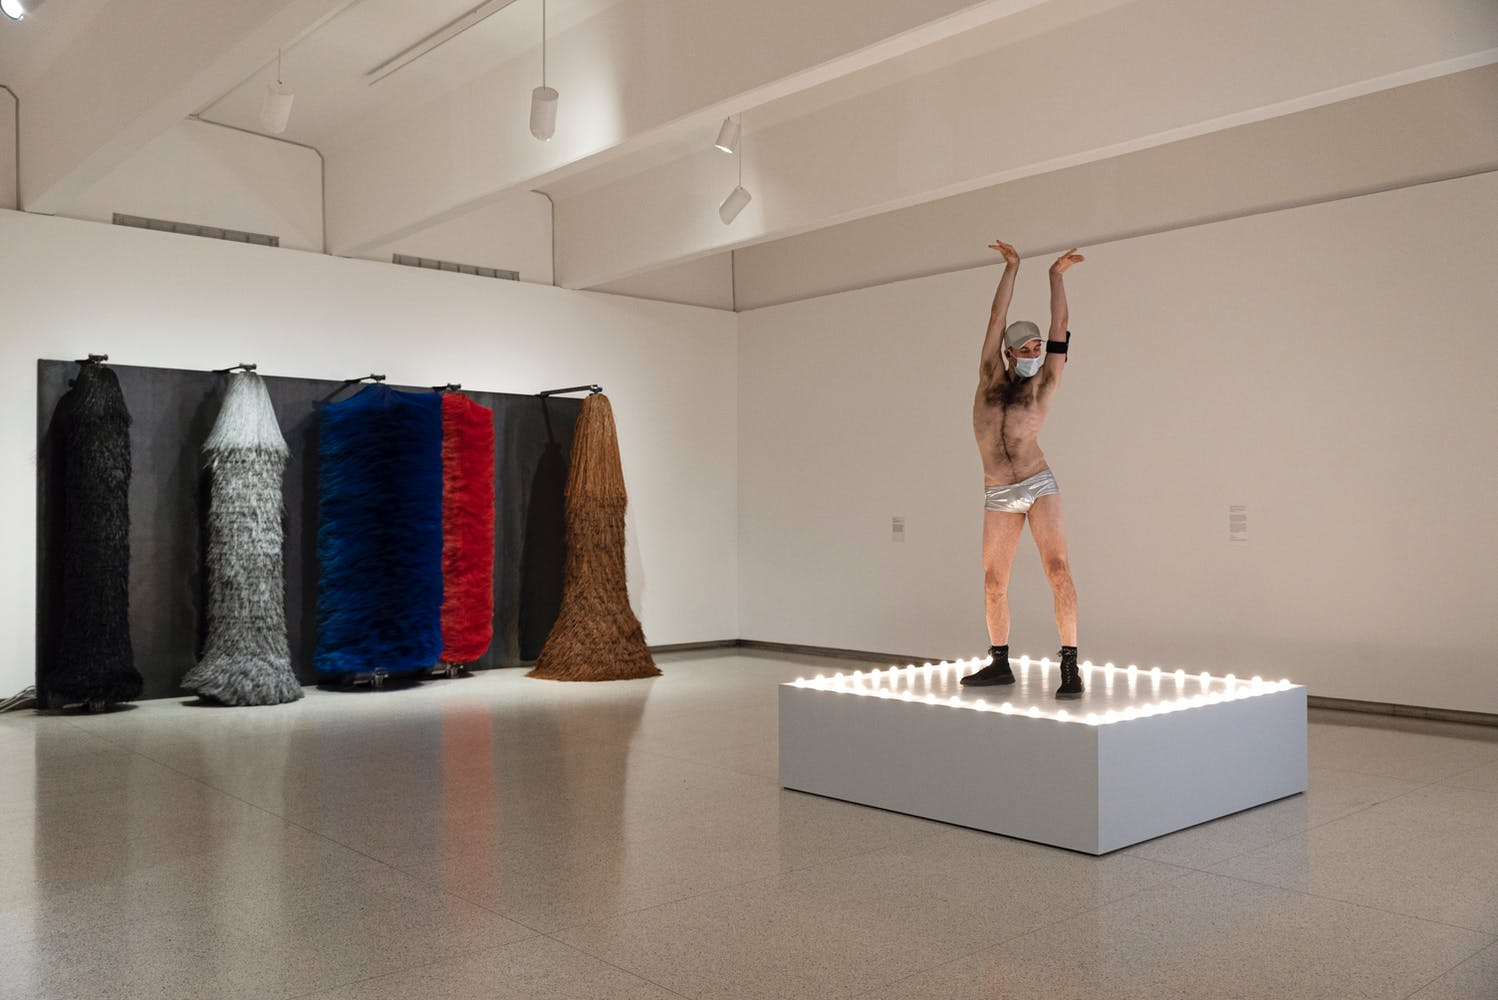 Gallery view with large car wash spinning brushes on wall with man wearing only speedo and shoes dancing on lit platform in foreground